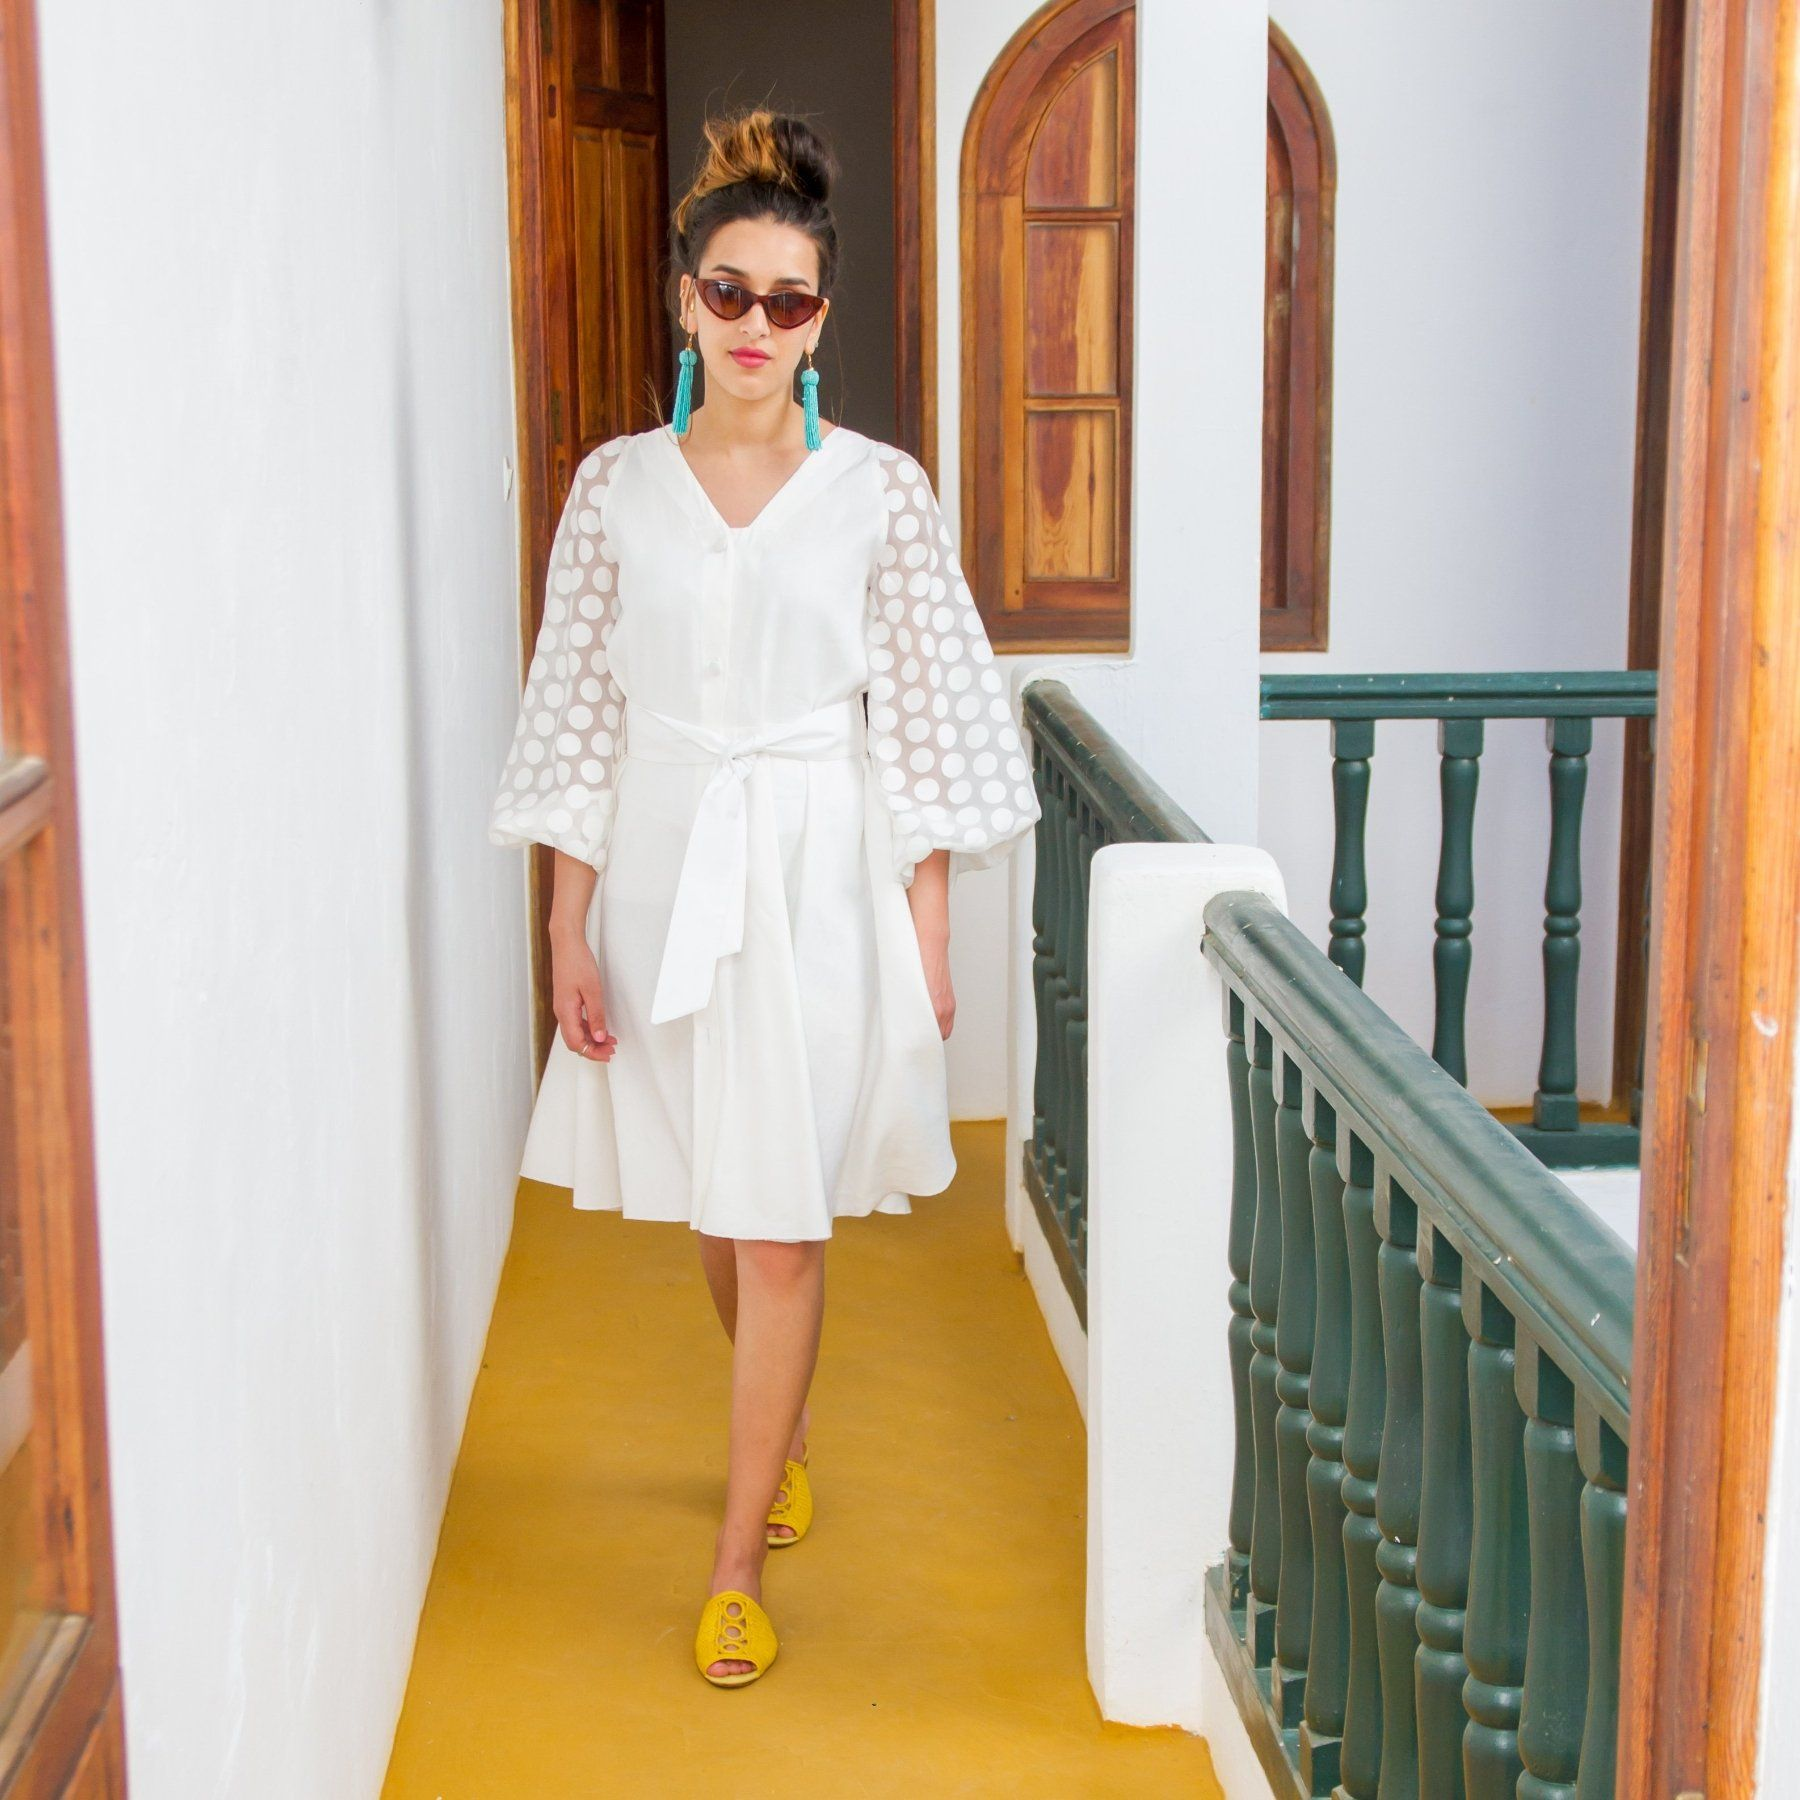 'Martina' White Linen Dress